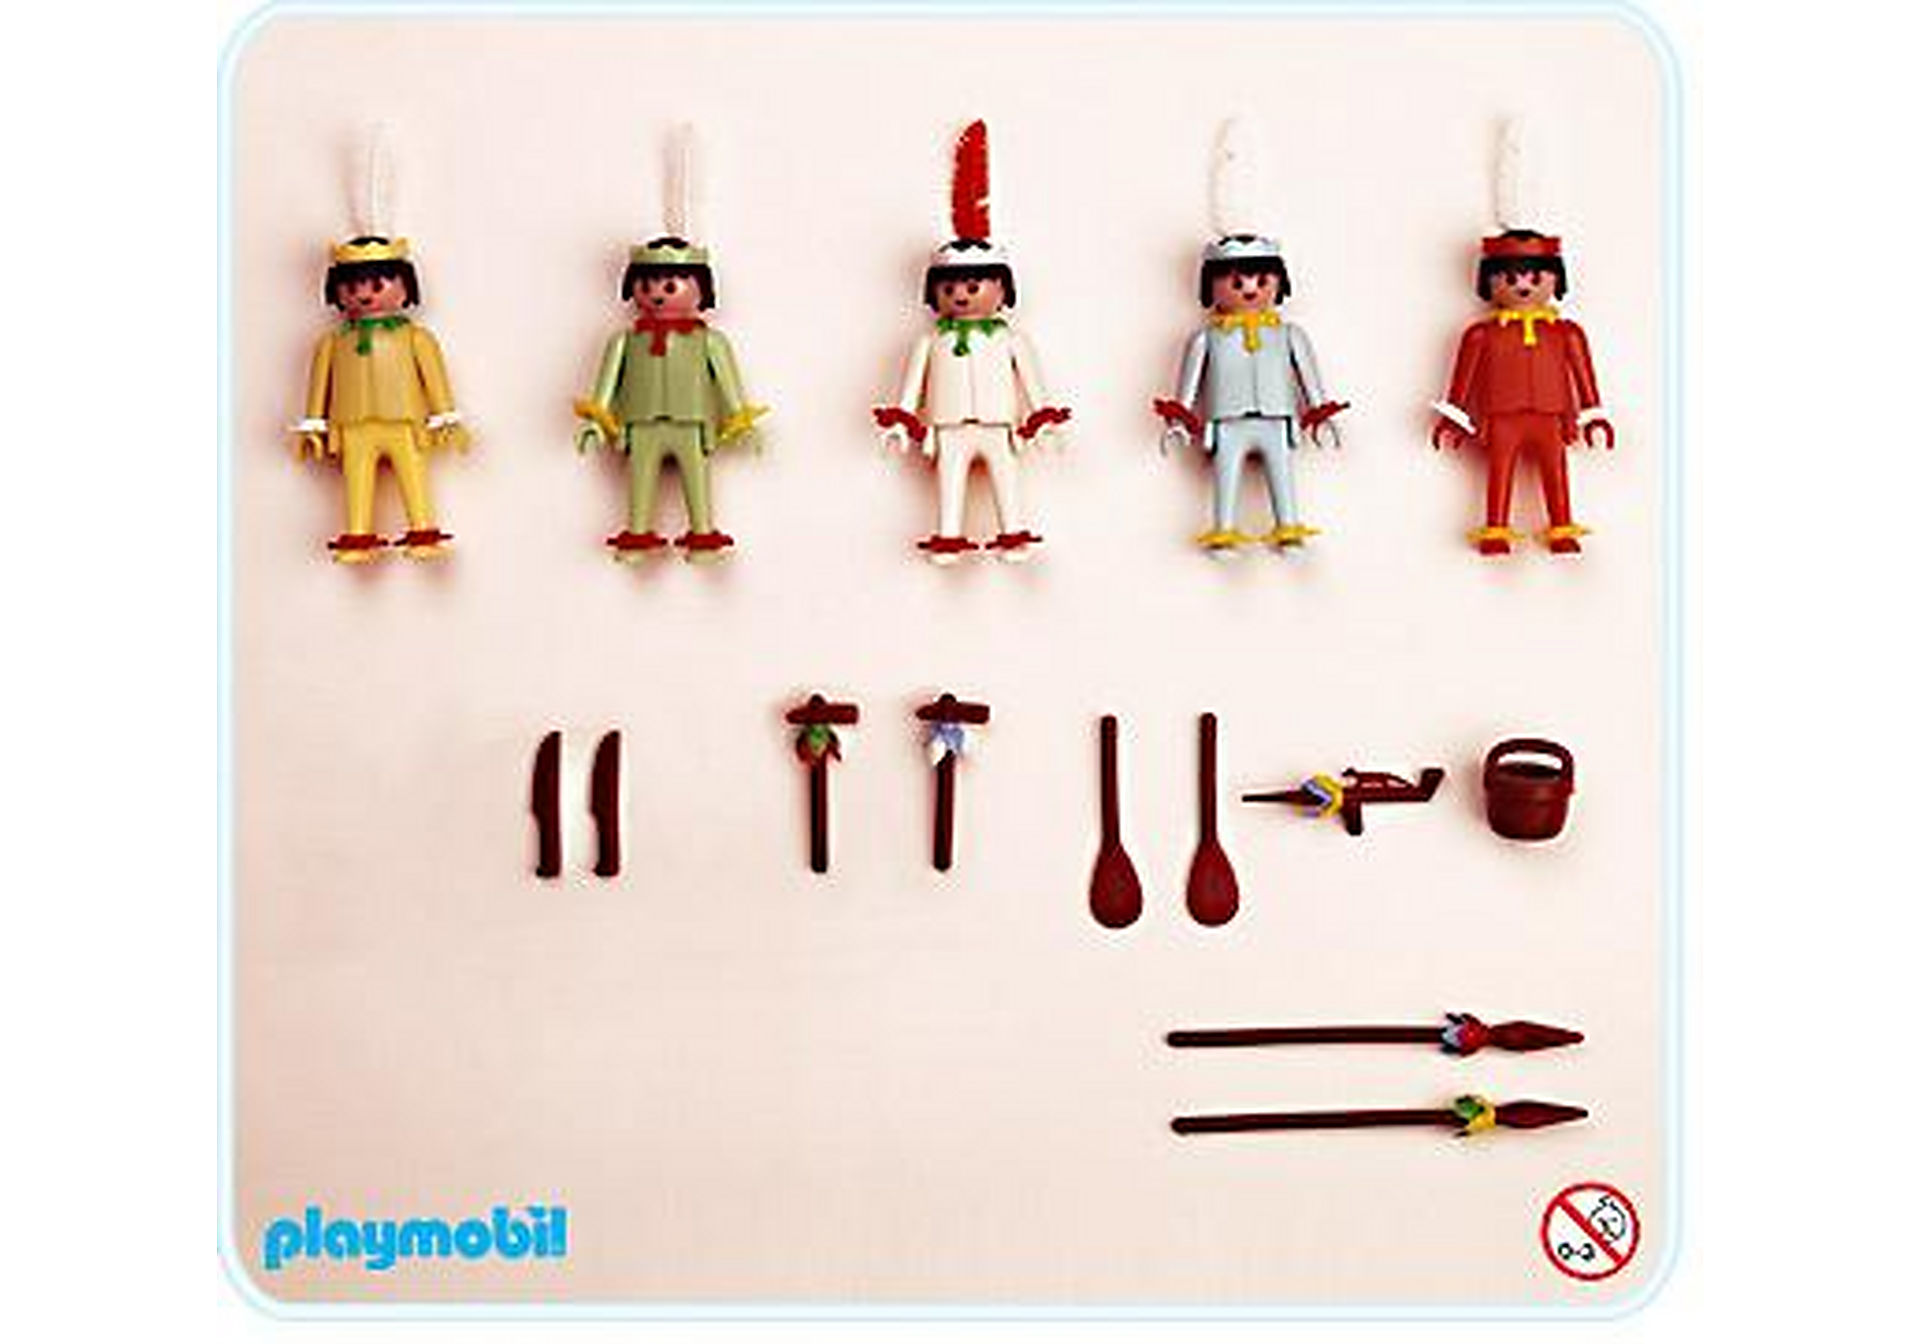 http://media.playmobil.com/i/playmobil/3120-A_product_detail/Indianer-Set